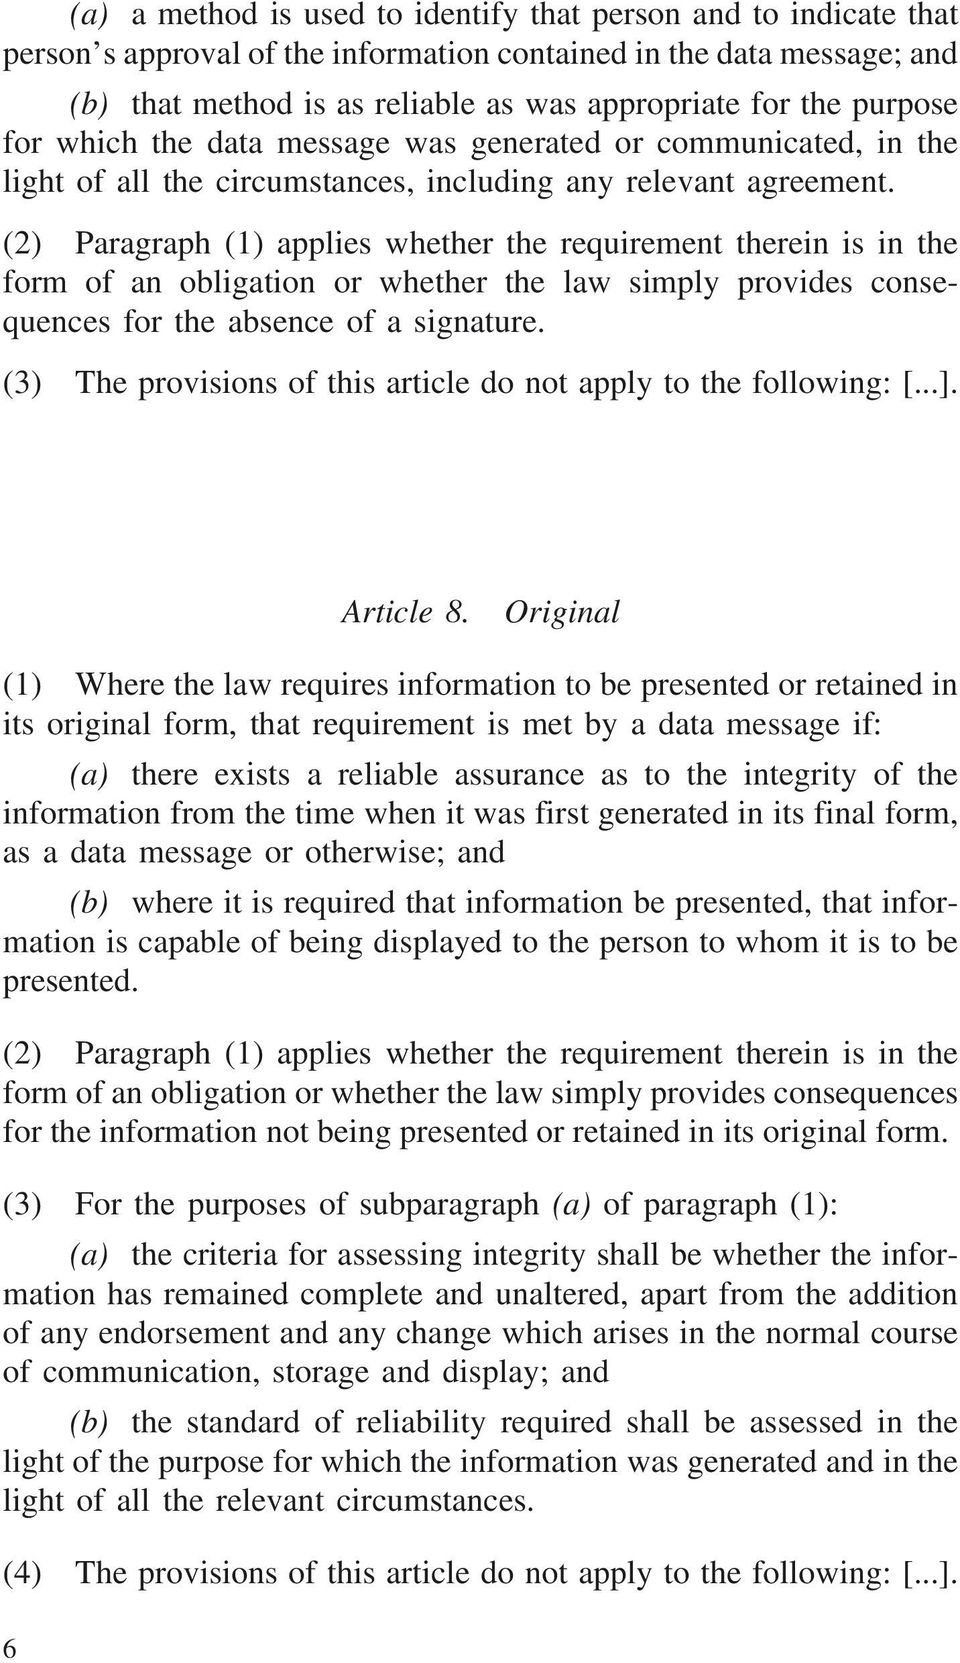 (2) Paragraph (1) applies whether the requirement therein is in the form of an obligation or whether the law simply provides consequences for the absence of a signature.